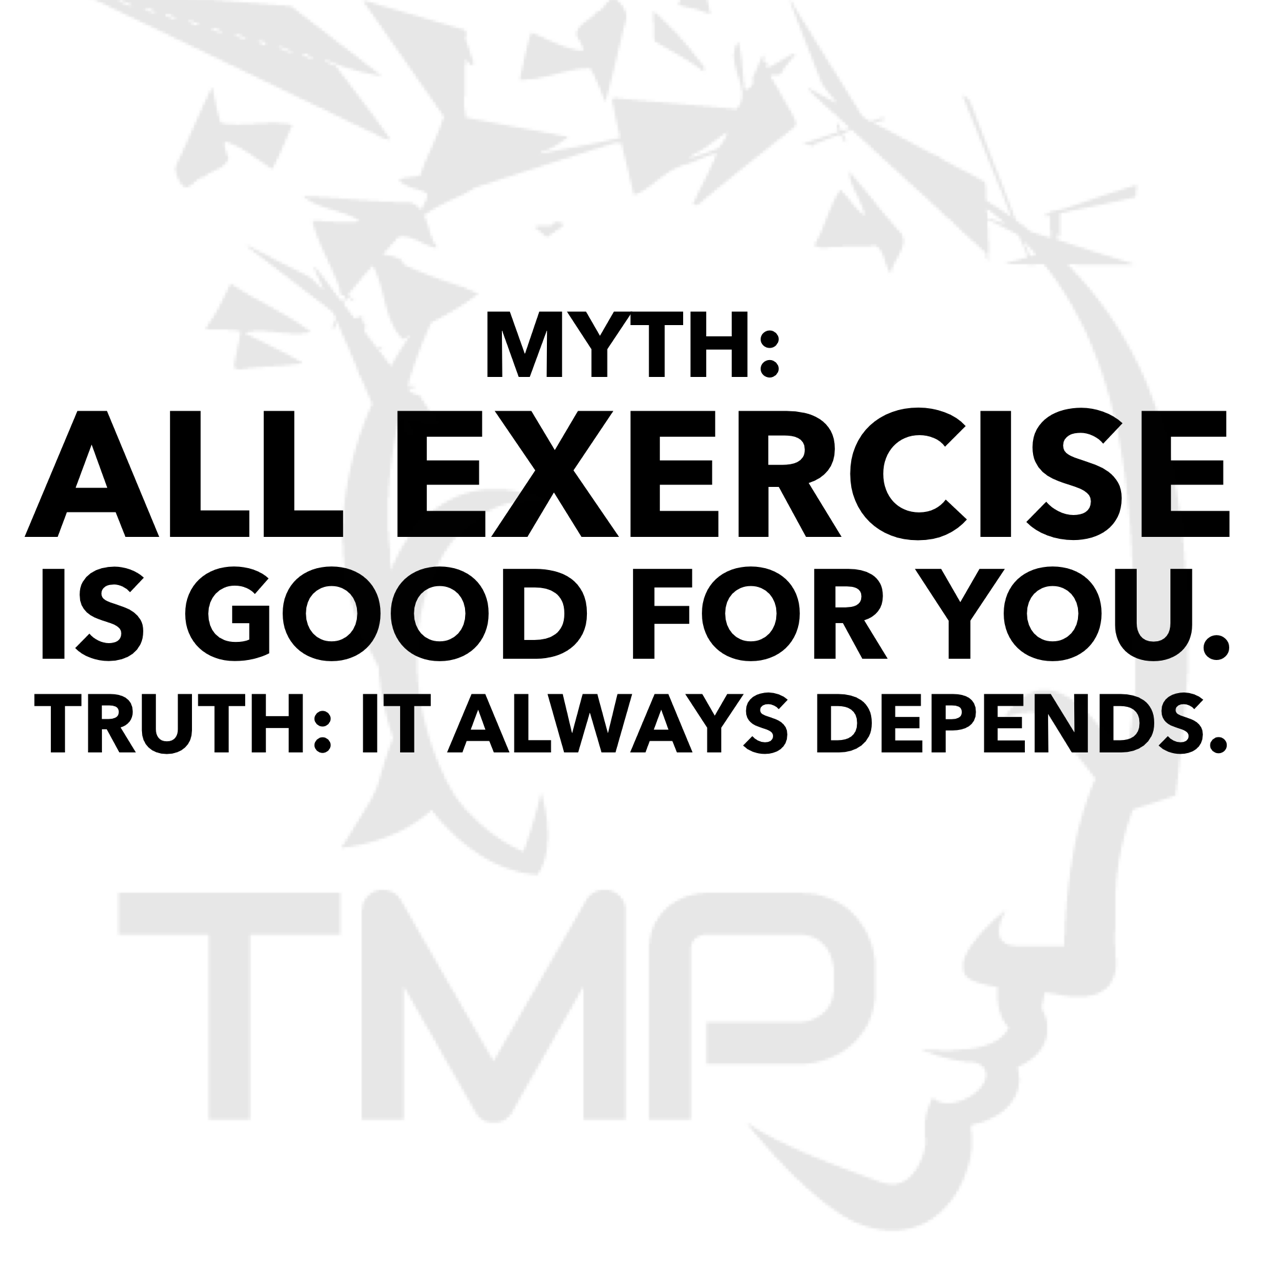 myth- all exercise is good for you. truth - it always depends.